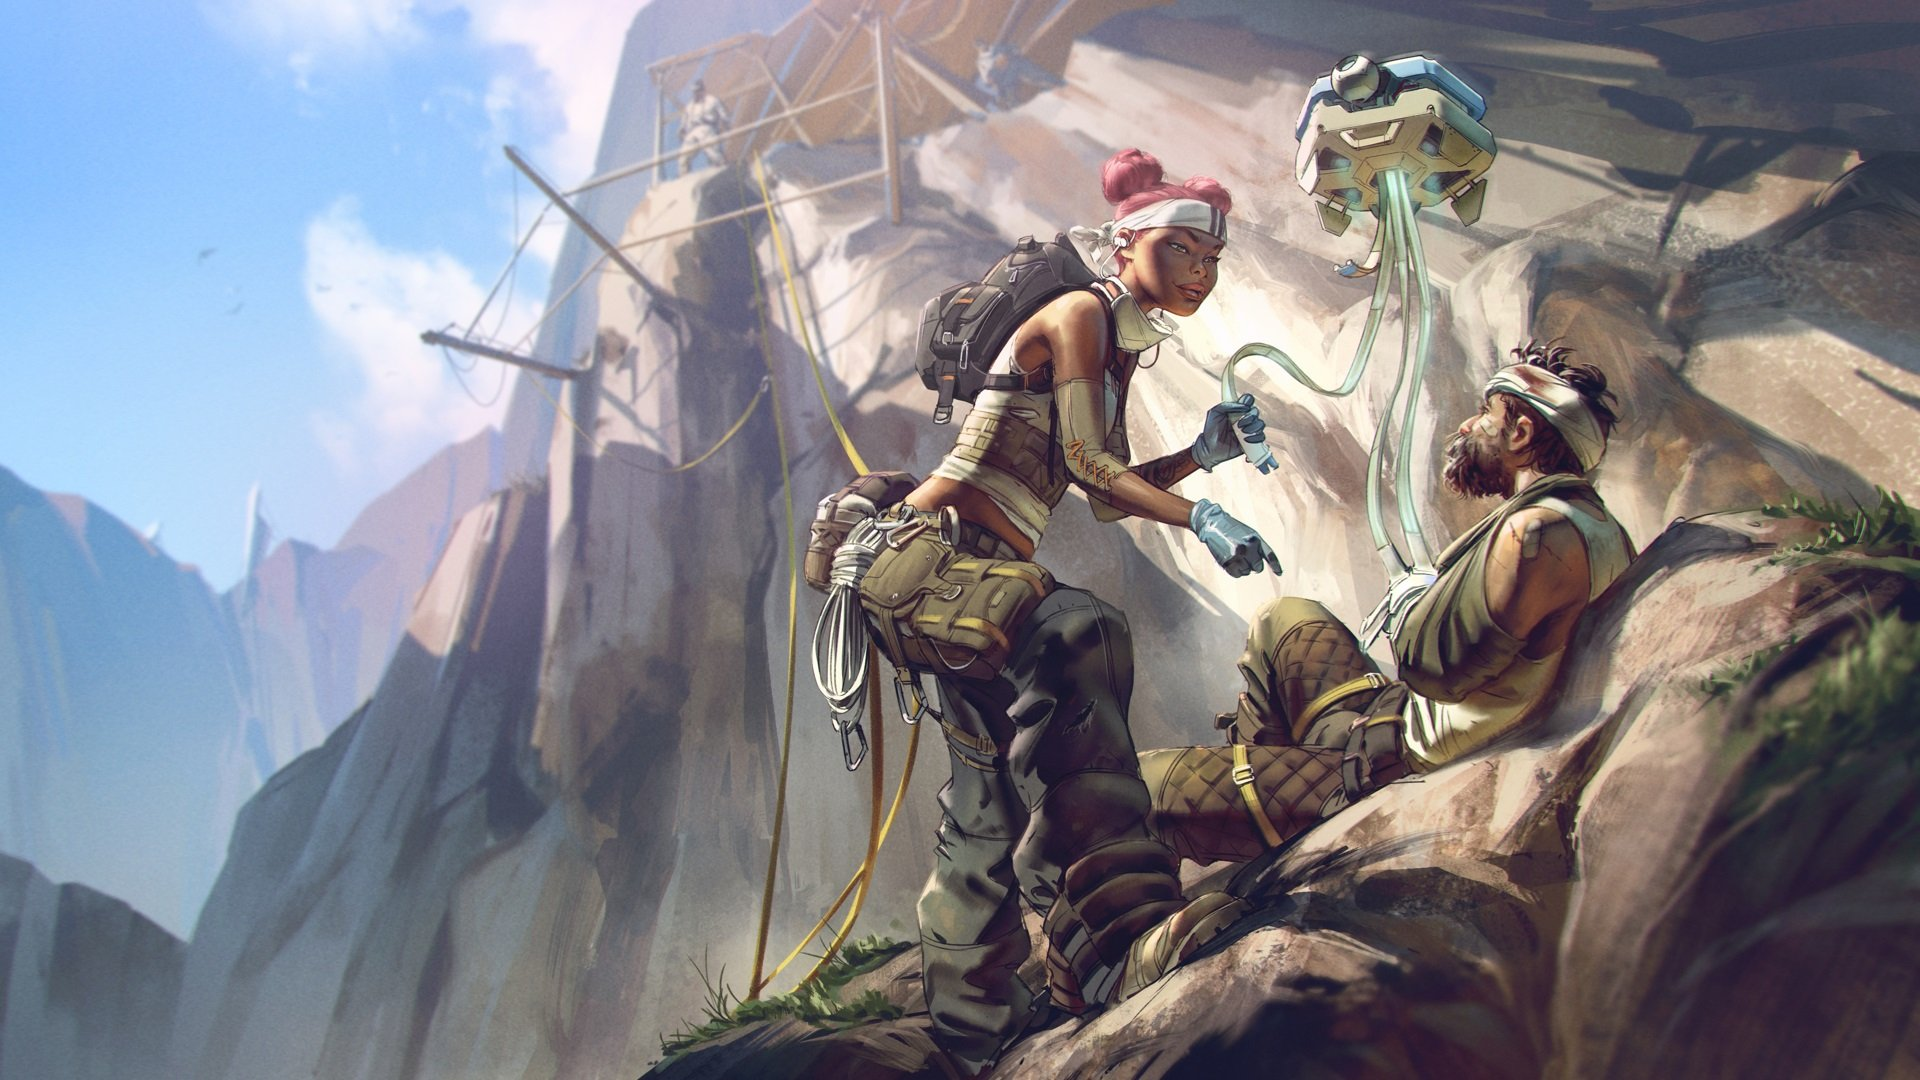 The first Battle Pass for Apex Legends will go live in March and will last approximately three months. In that time, Battle Pass owners will have the opportunity to earn exclusive cosmetic items.